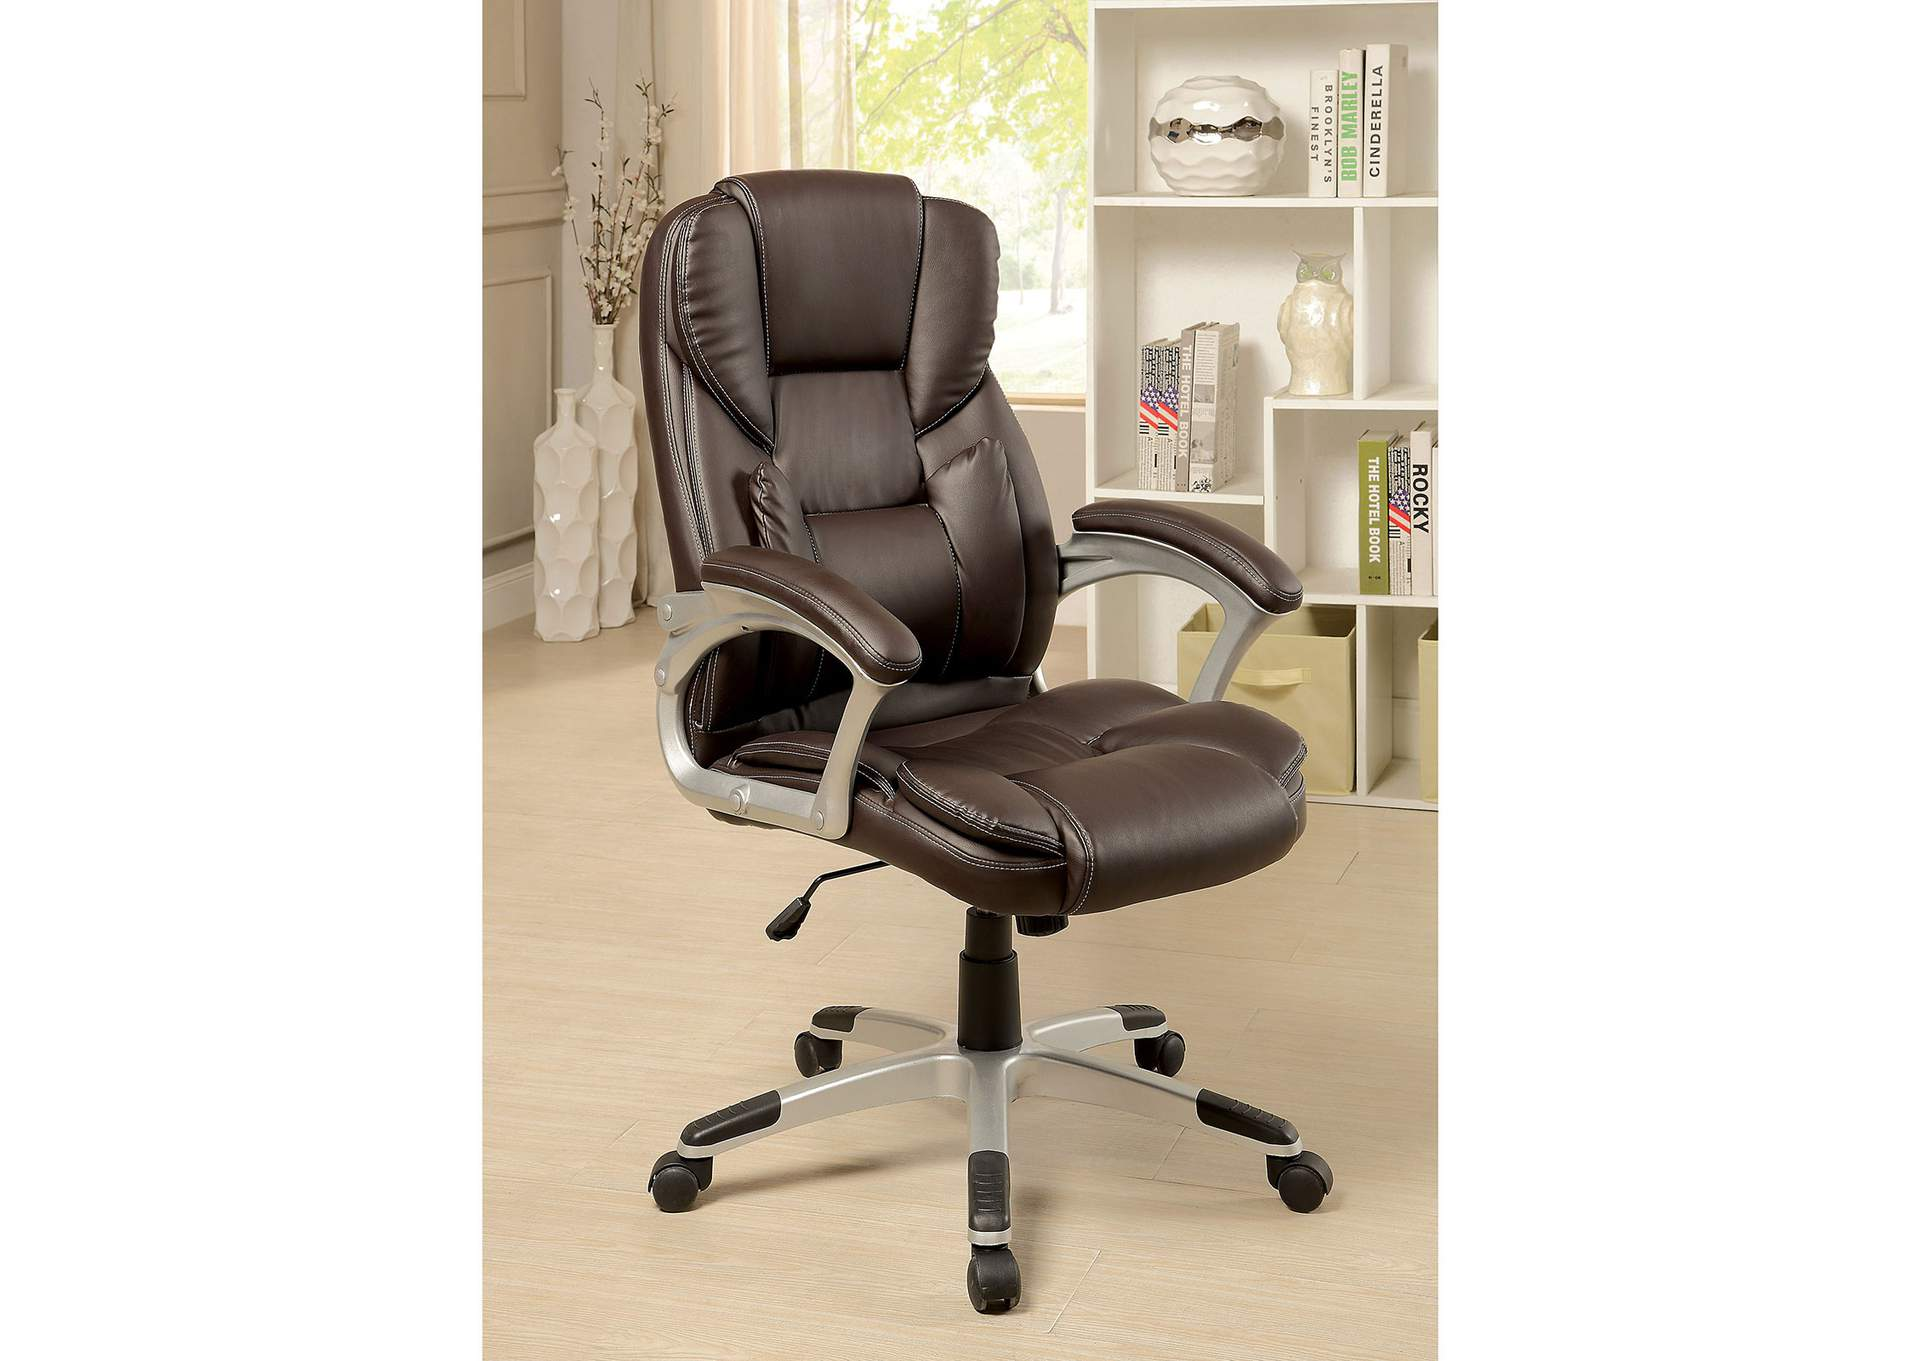 Sibley Brown Office Chair,Furniture of America